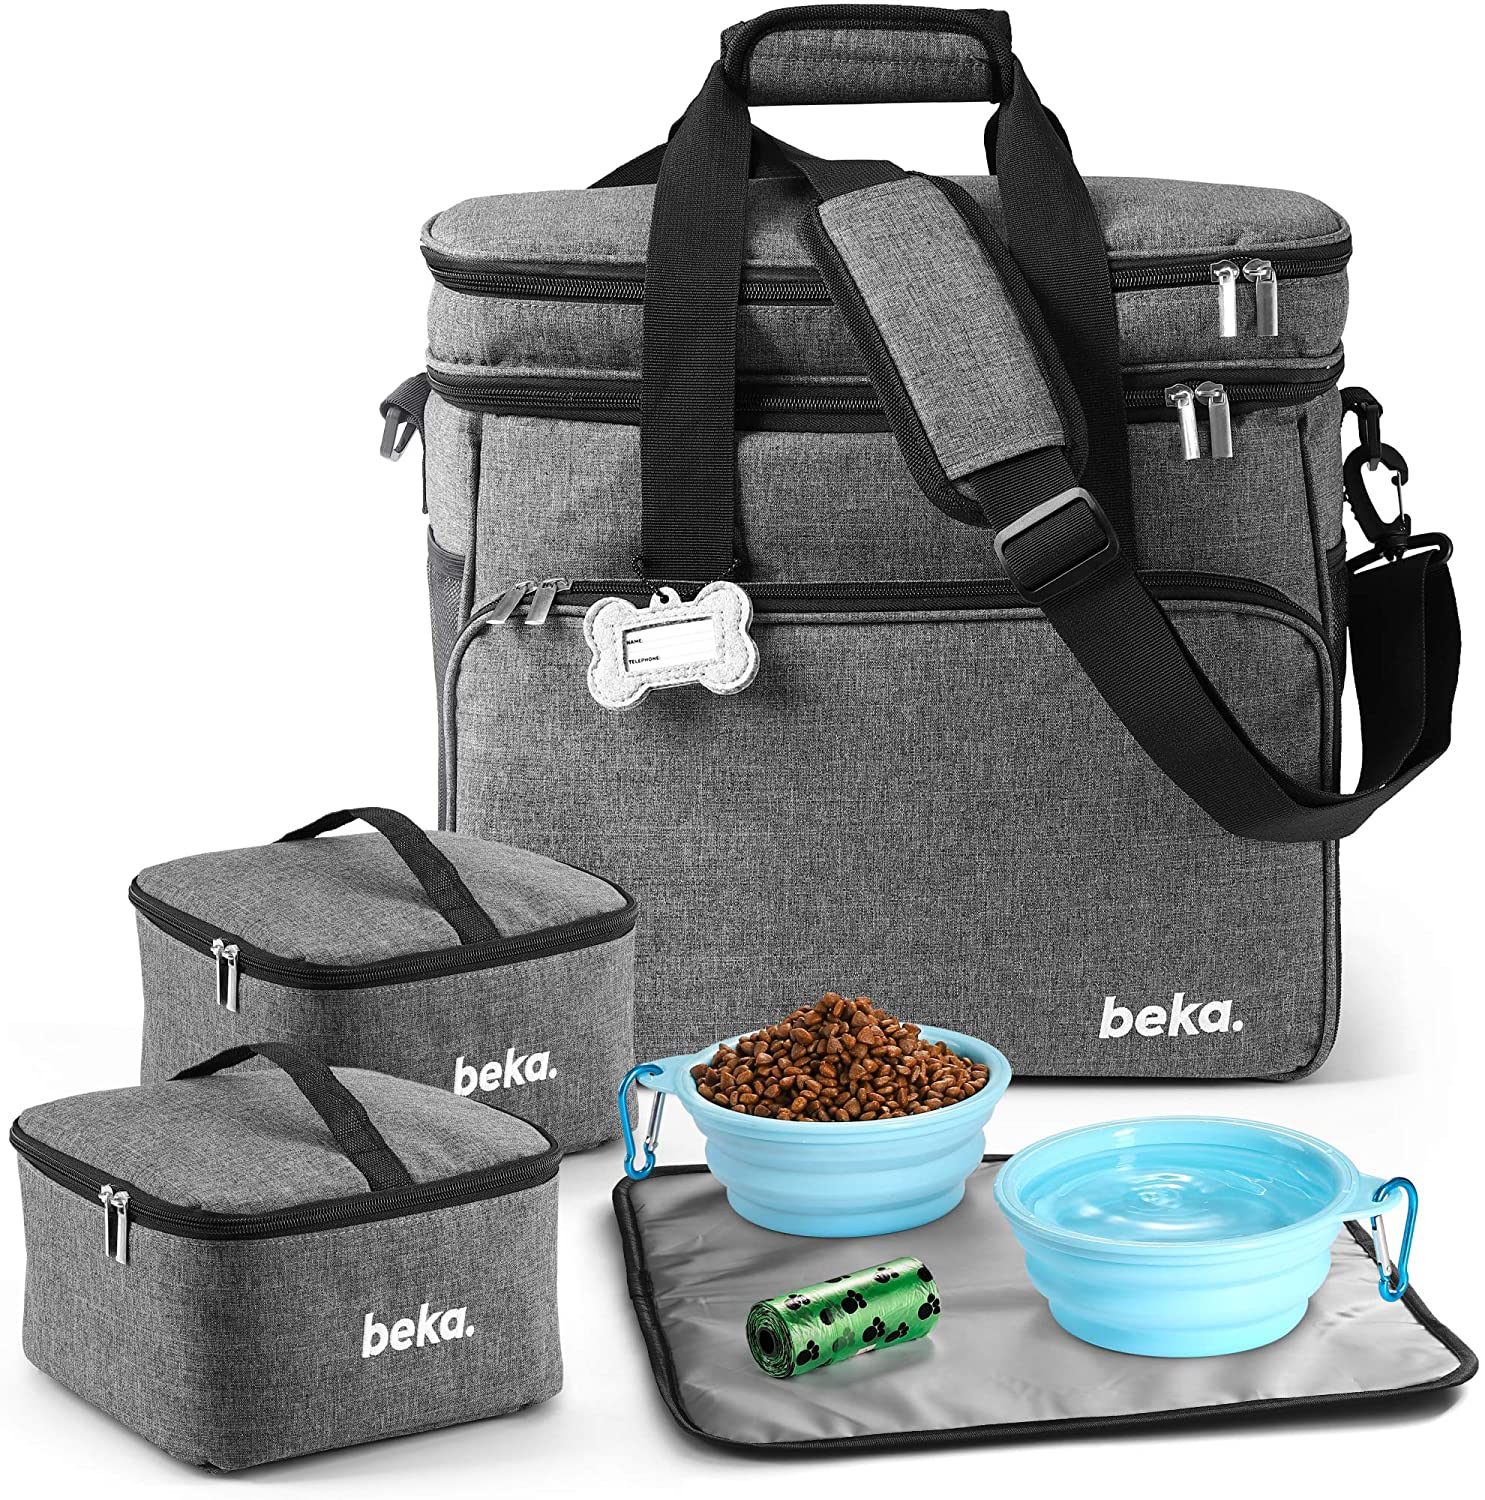 Beka Dog Bag